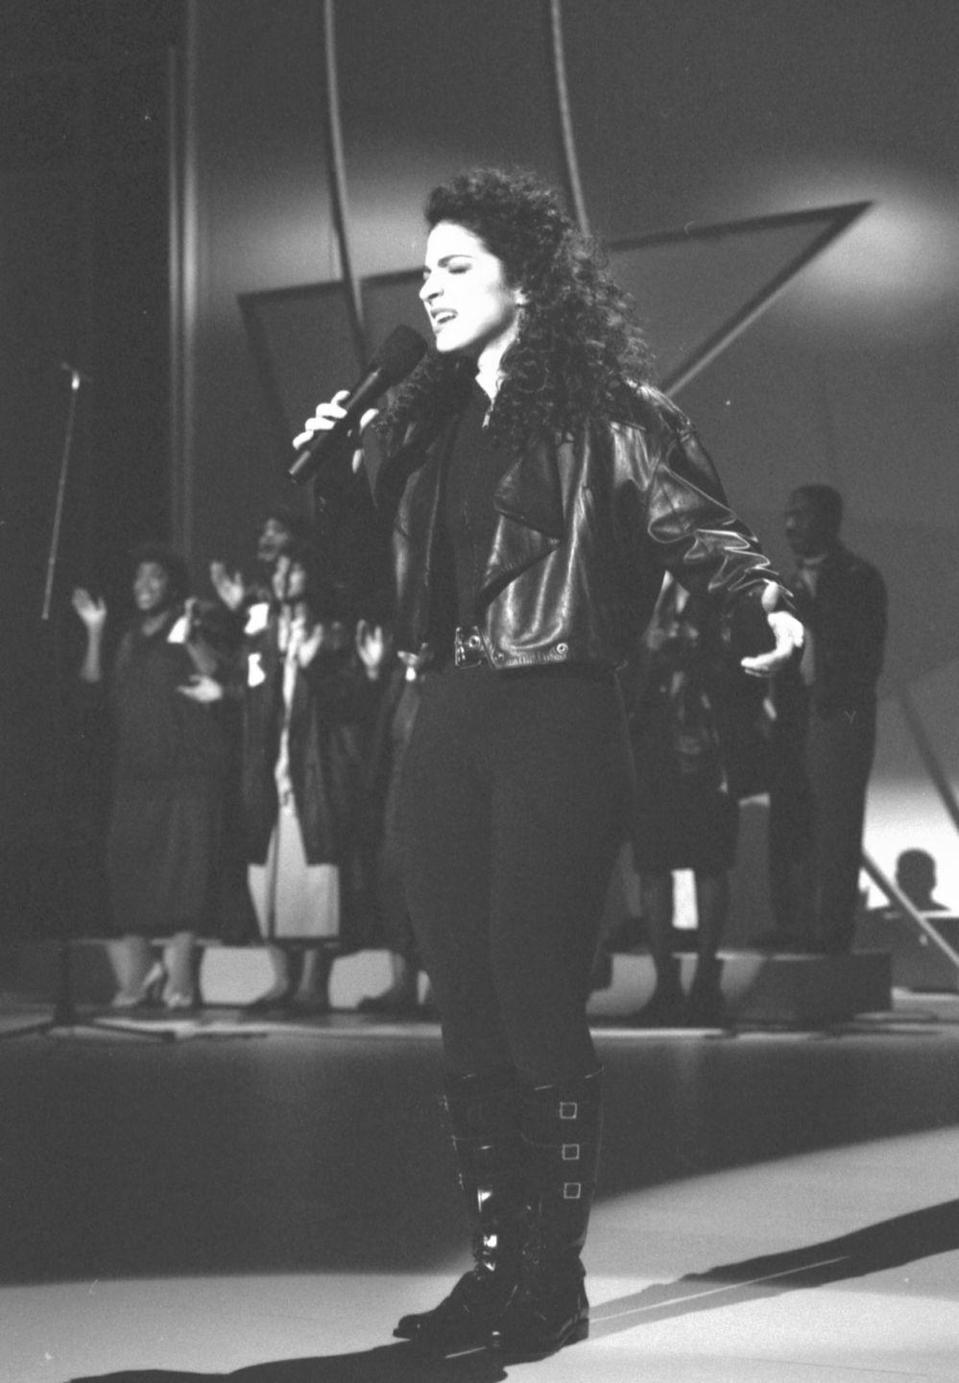 <p>The '80s ushered in an era of edgier shoe trends, as seen here on Gloria Estefan, who wore black leather boots with buckle detailing while performing at a concert. </p>